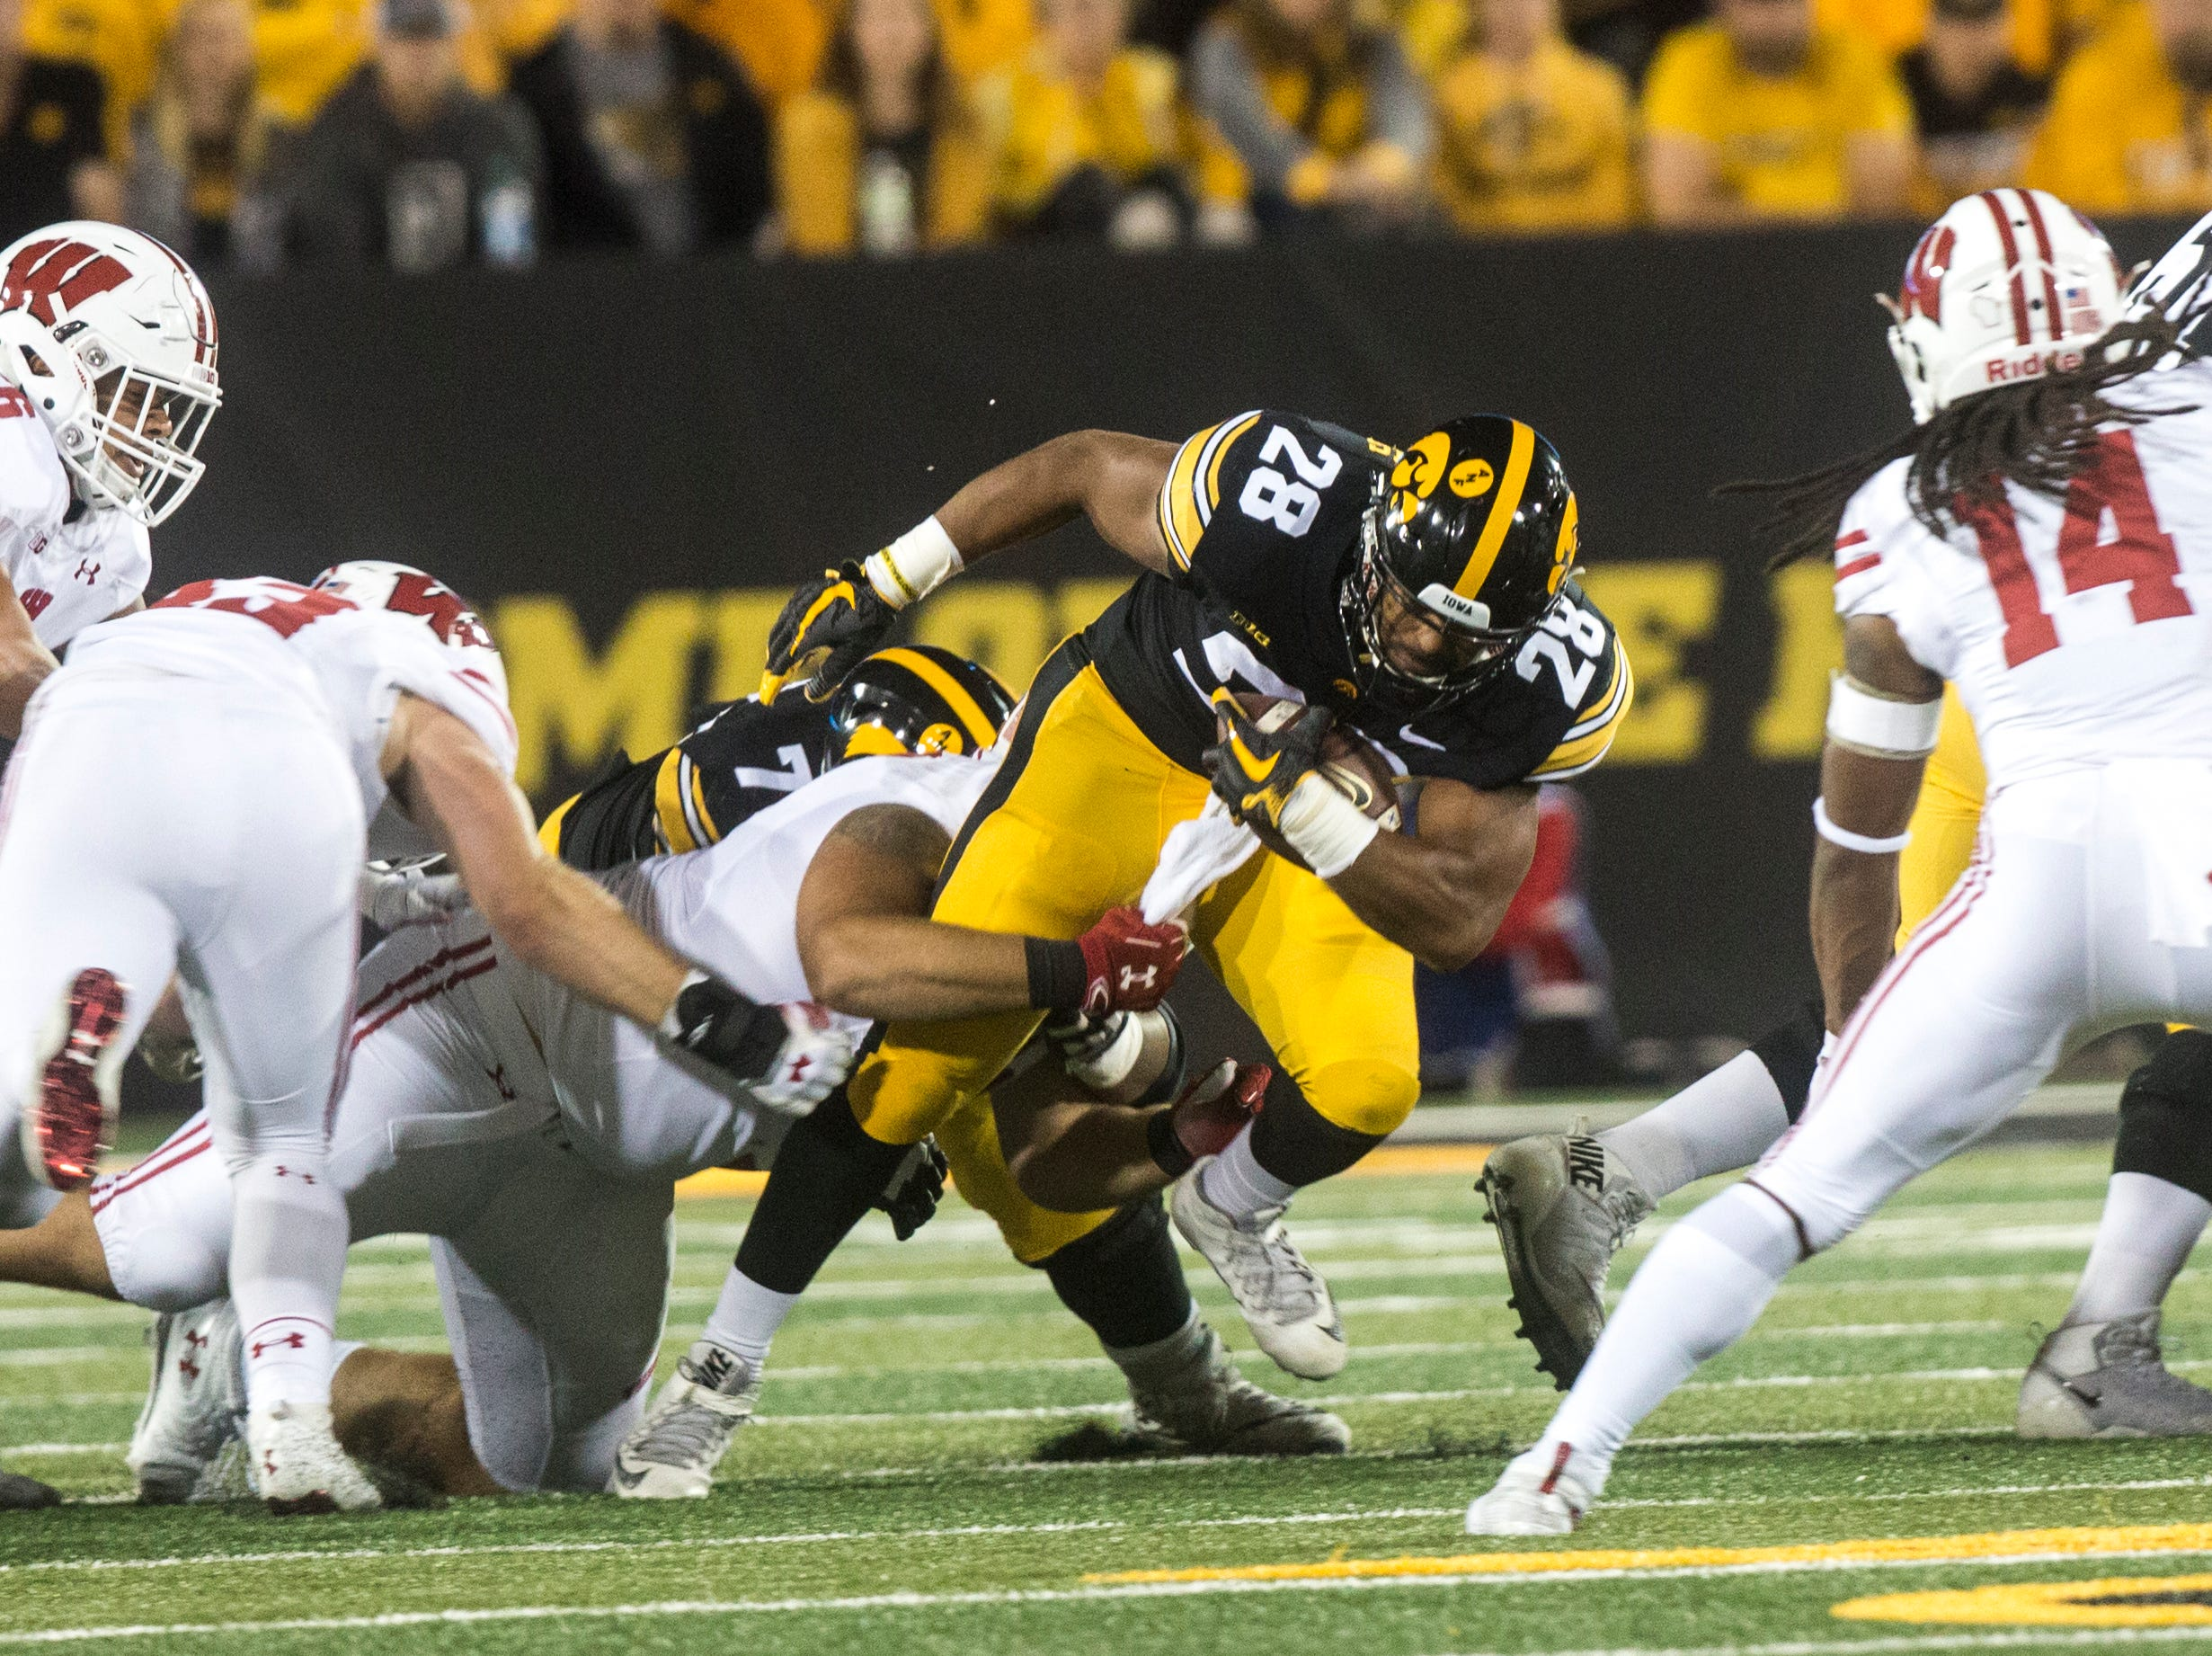 Iowa running back Toren Young (28) gets tackled during an NCAA football game on Saturday, Sept. 22, 2018, at Kinnick Stadium in Iowa City.